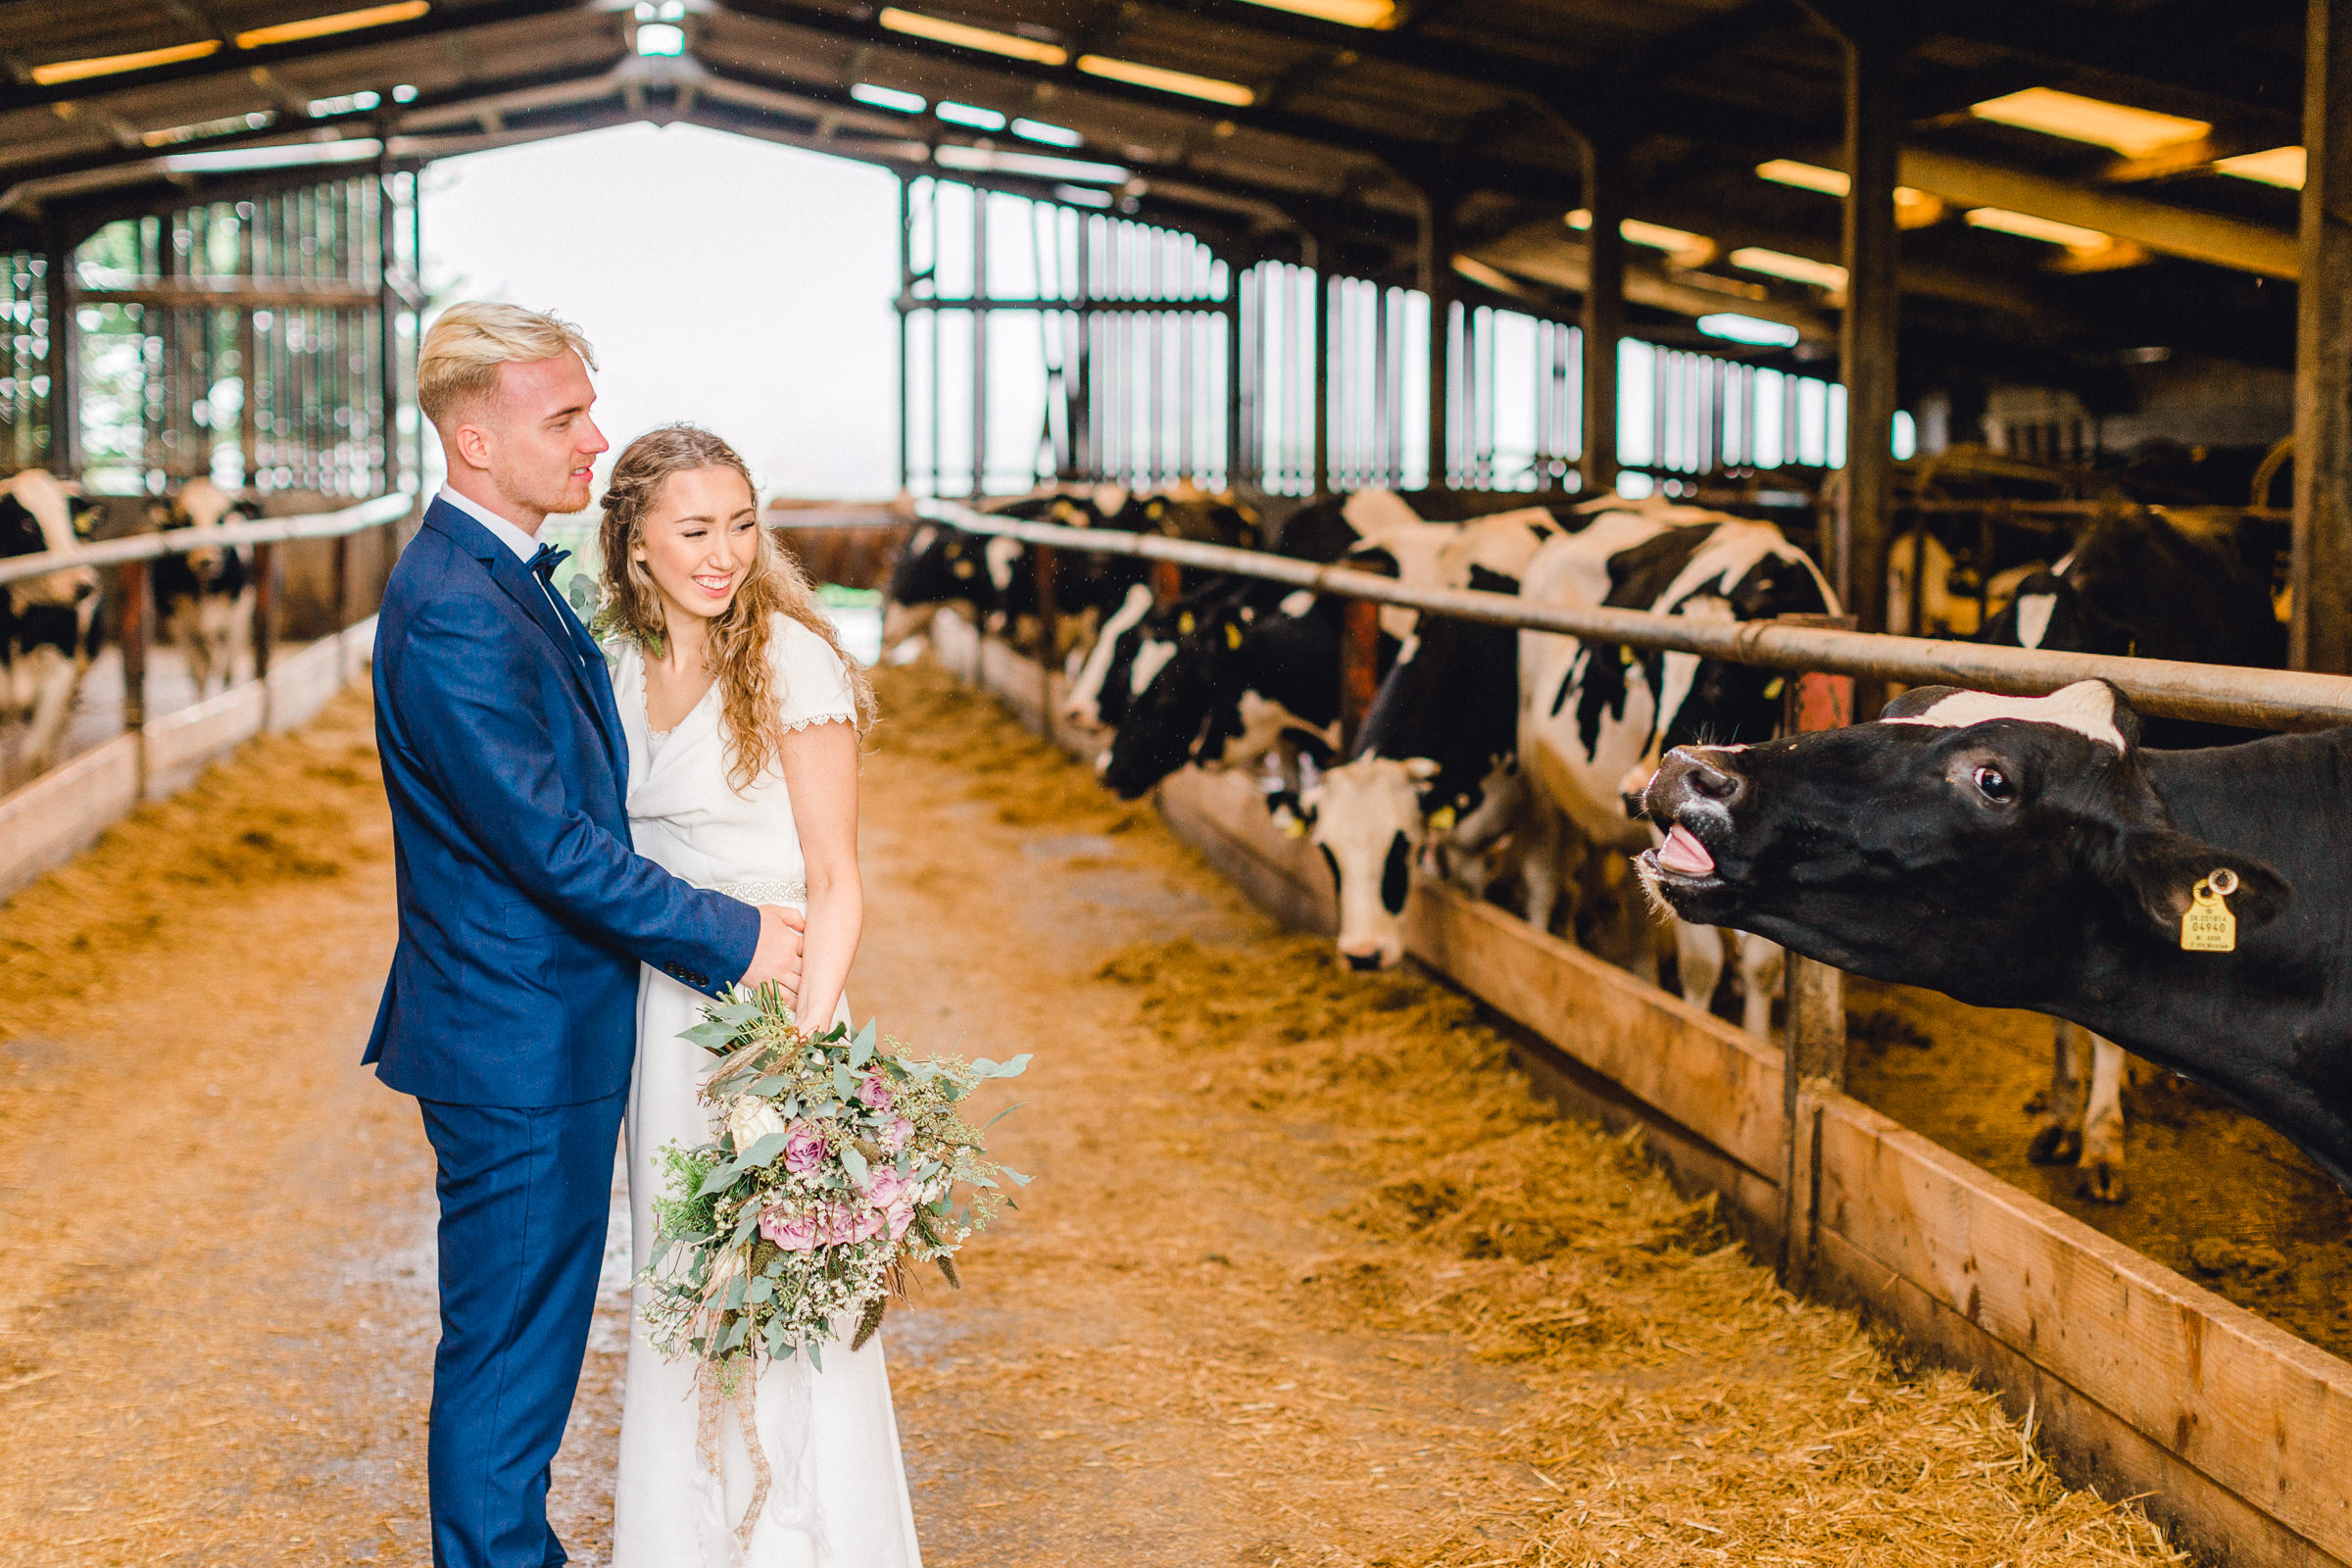 Bride and groom visiting the cowshed at Bashall Barn wedding venue